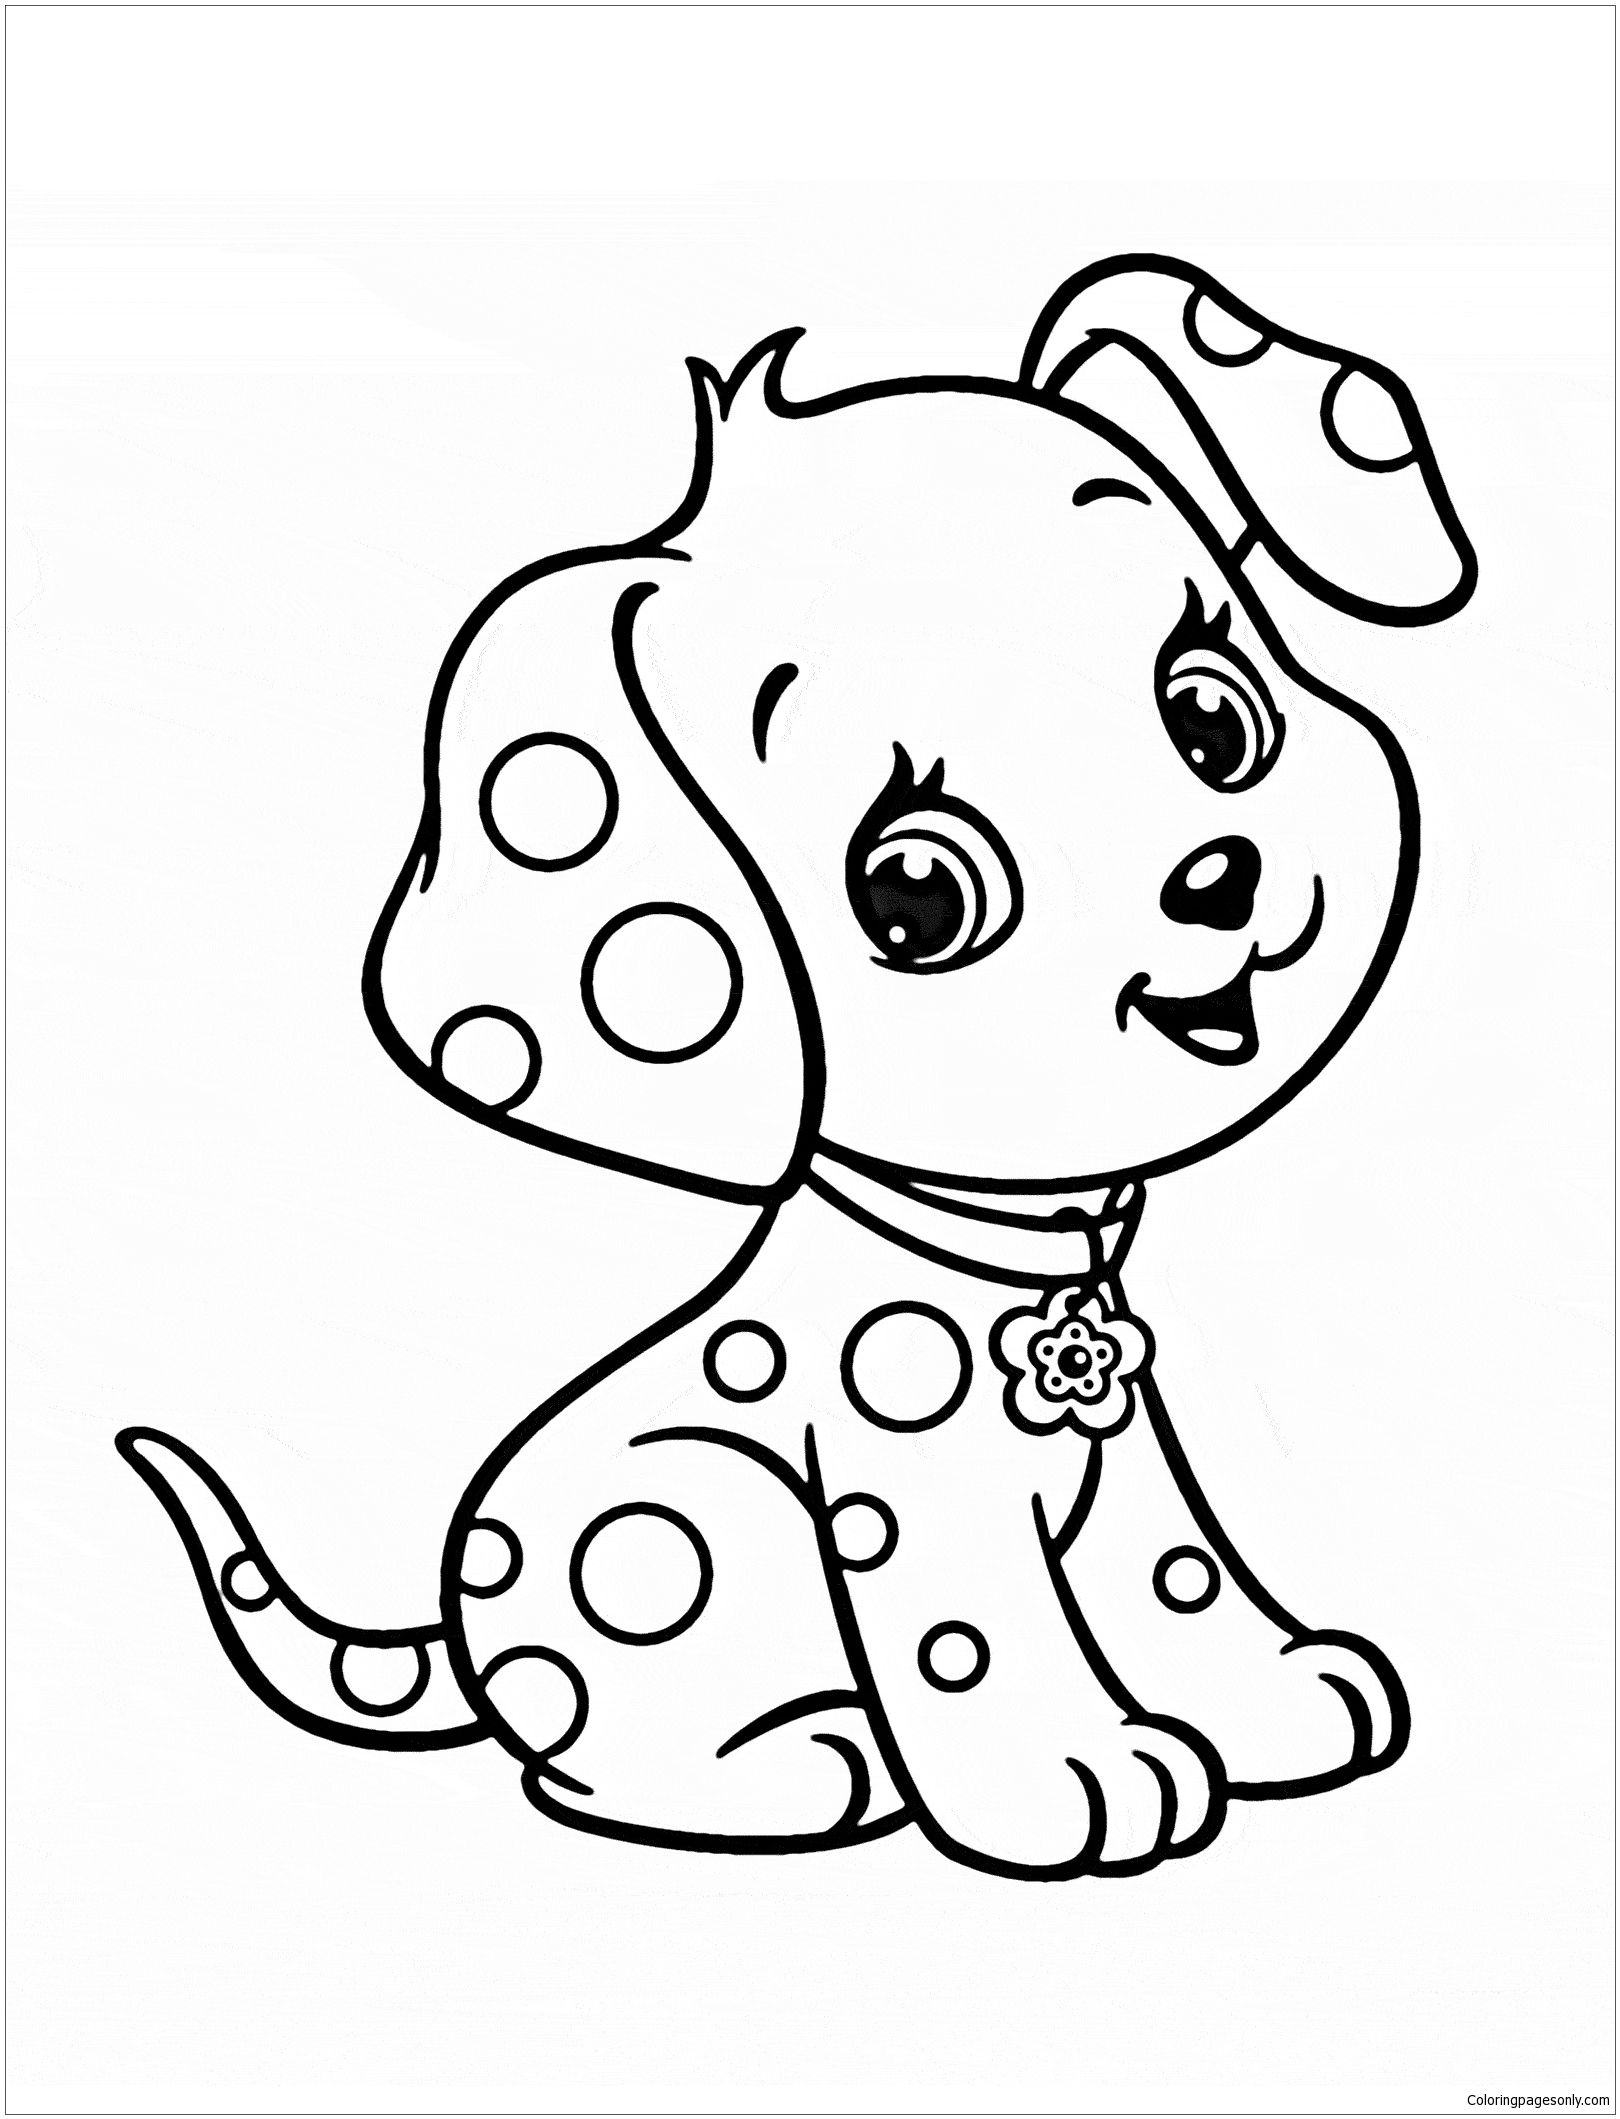 Cute Puppy 5 Coloring Page Puppy Coloring Pages Dog